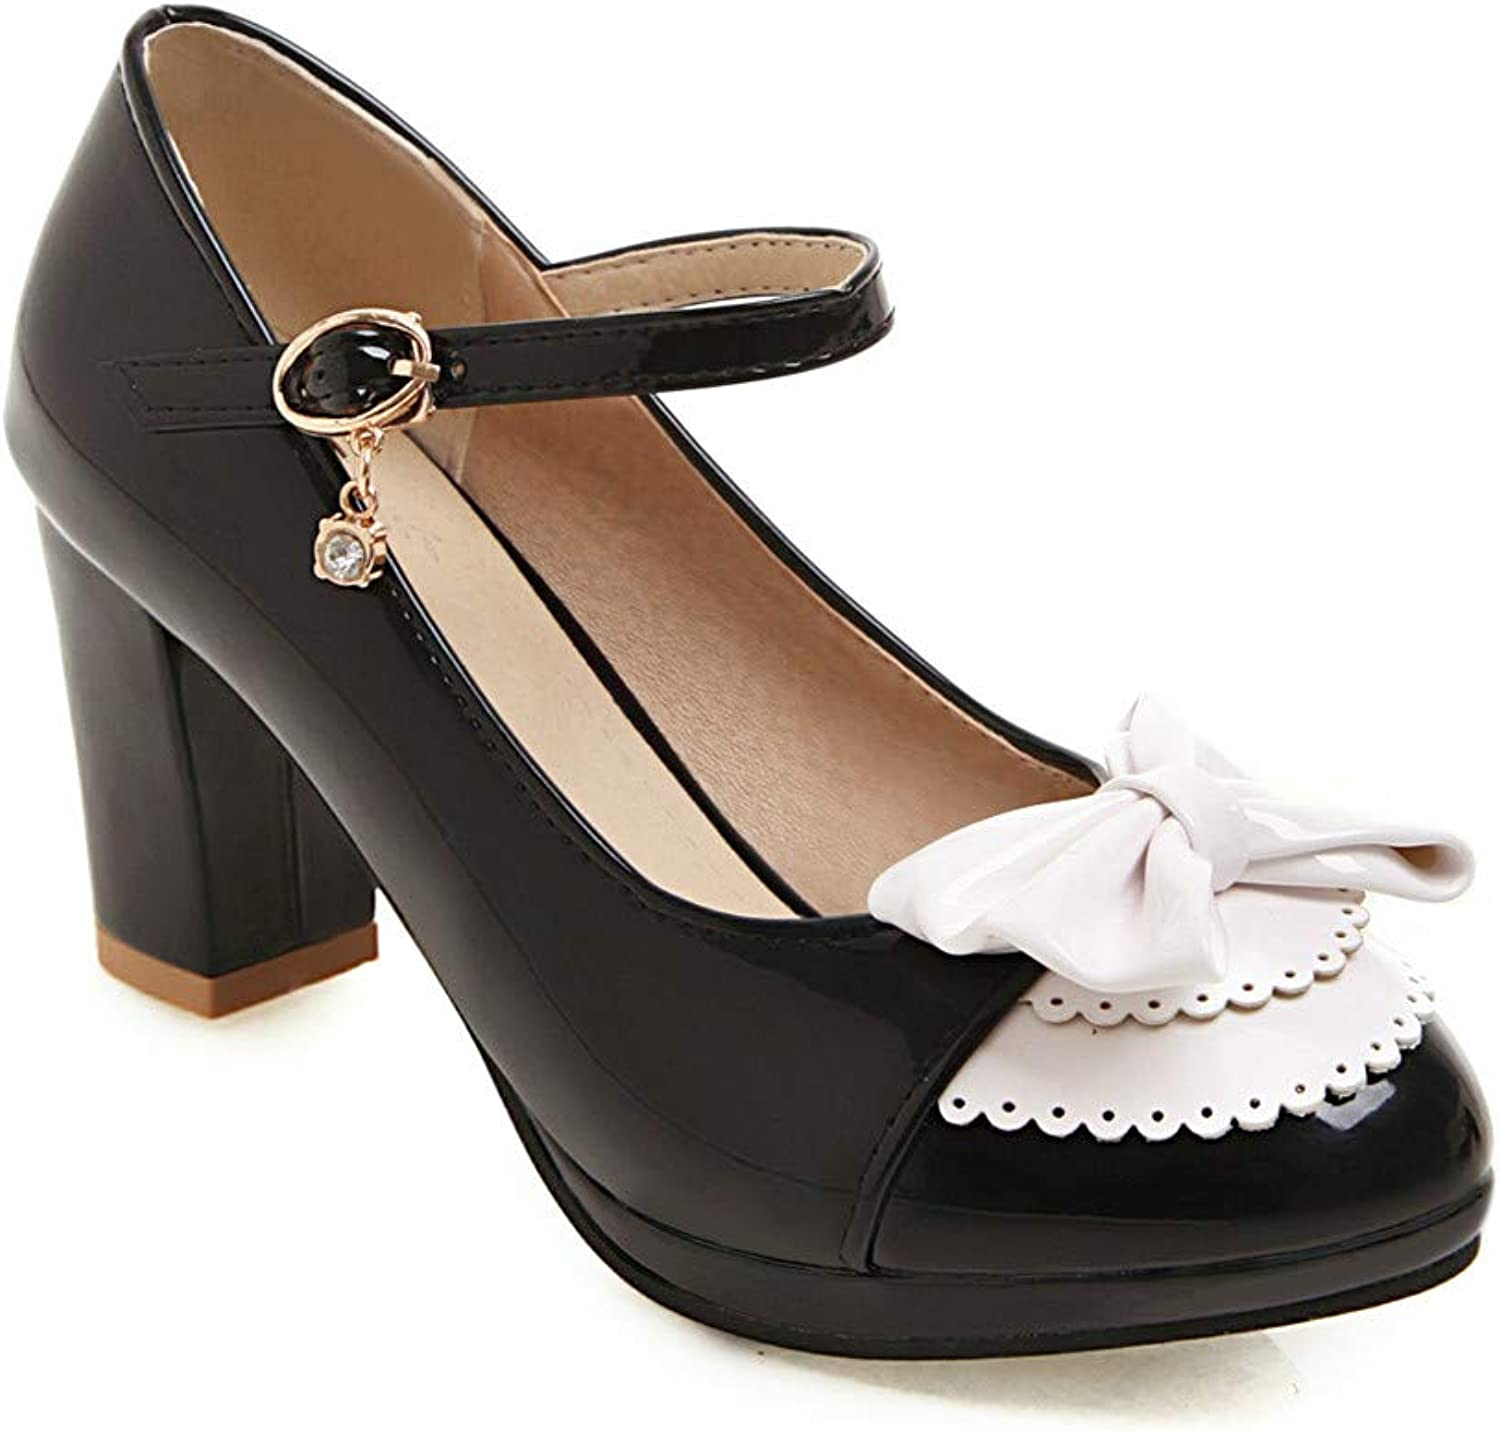 HILIB Woman's Middle Heel Lolita shoes Cute Bowknot Mary Jane shoes